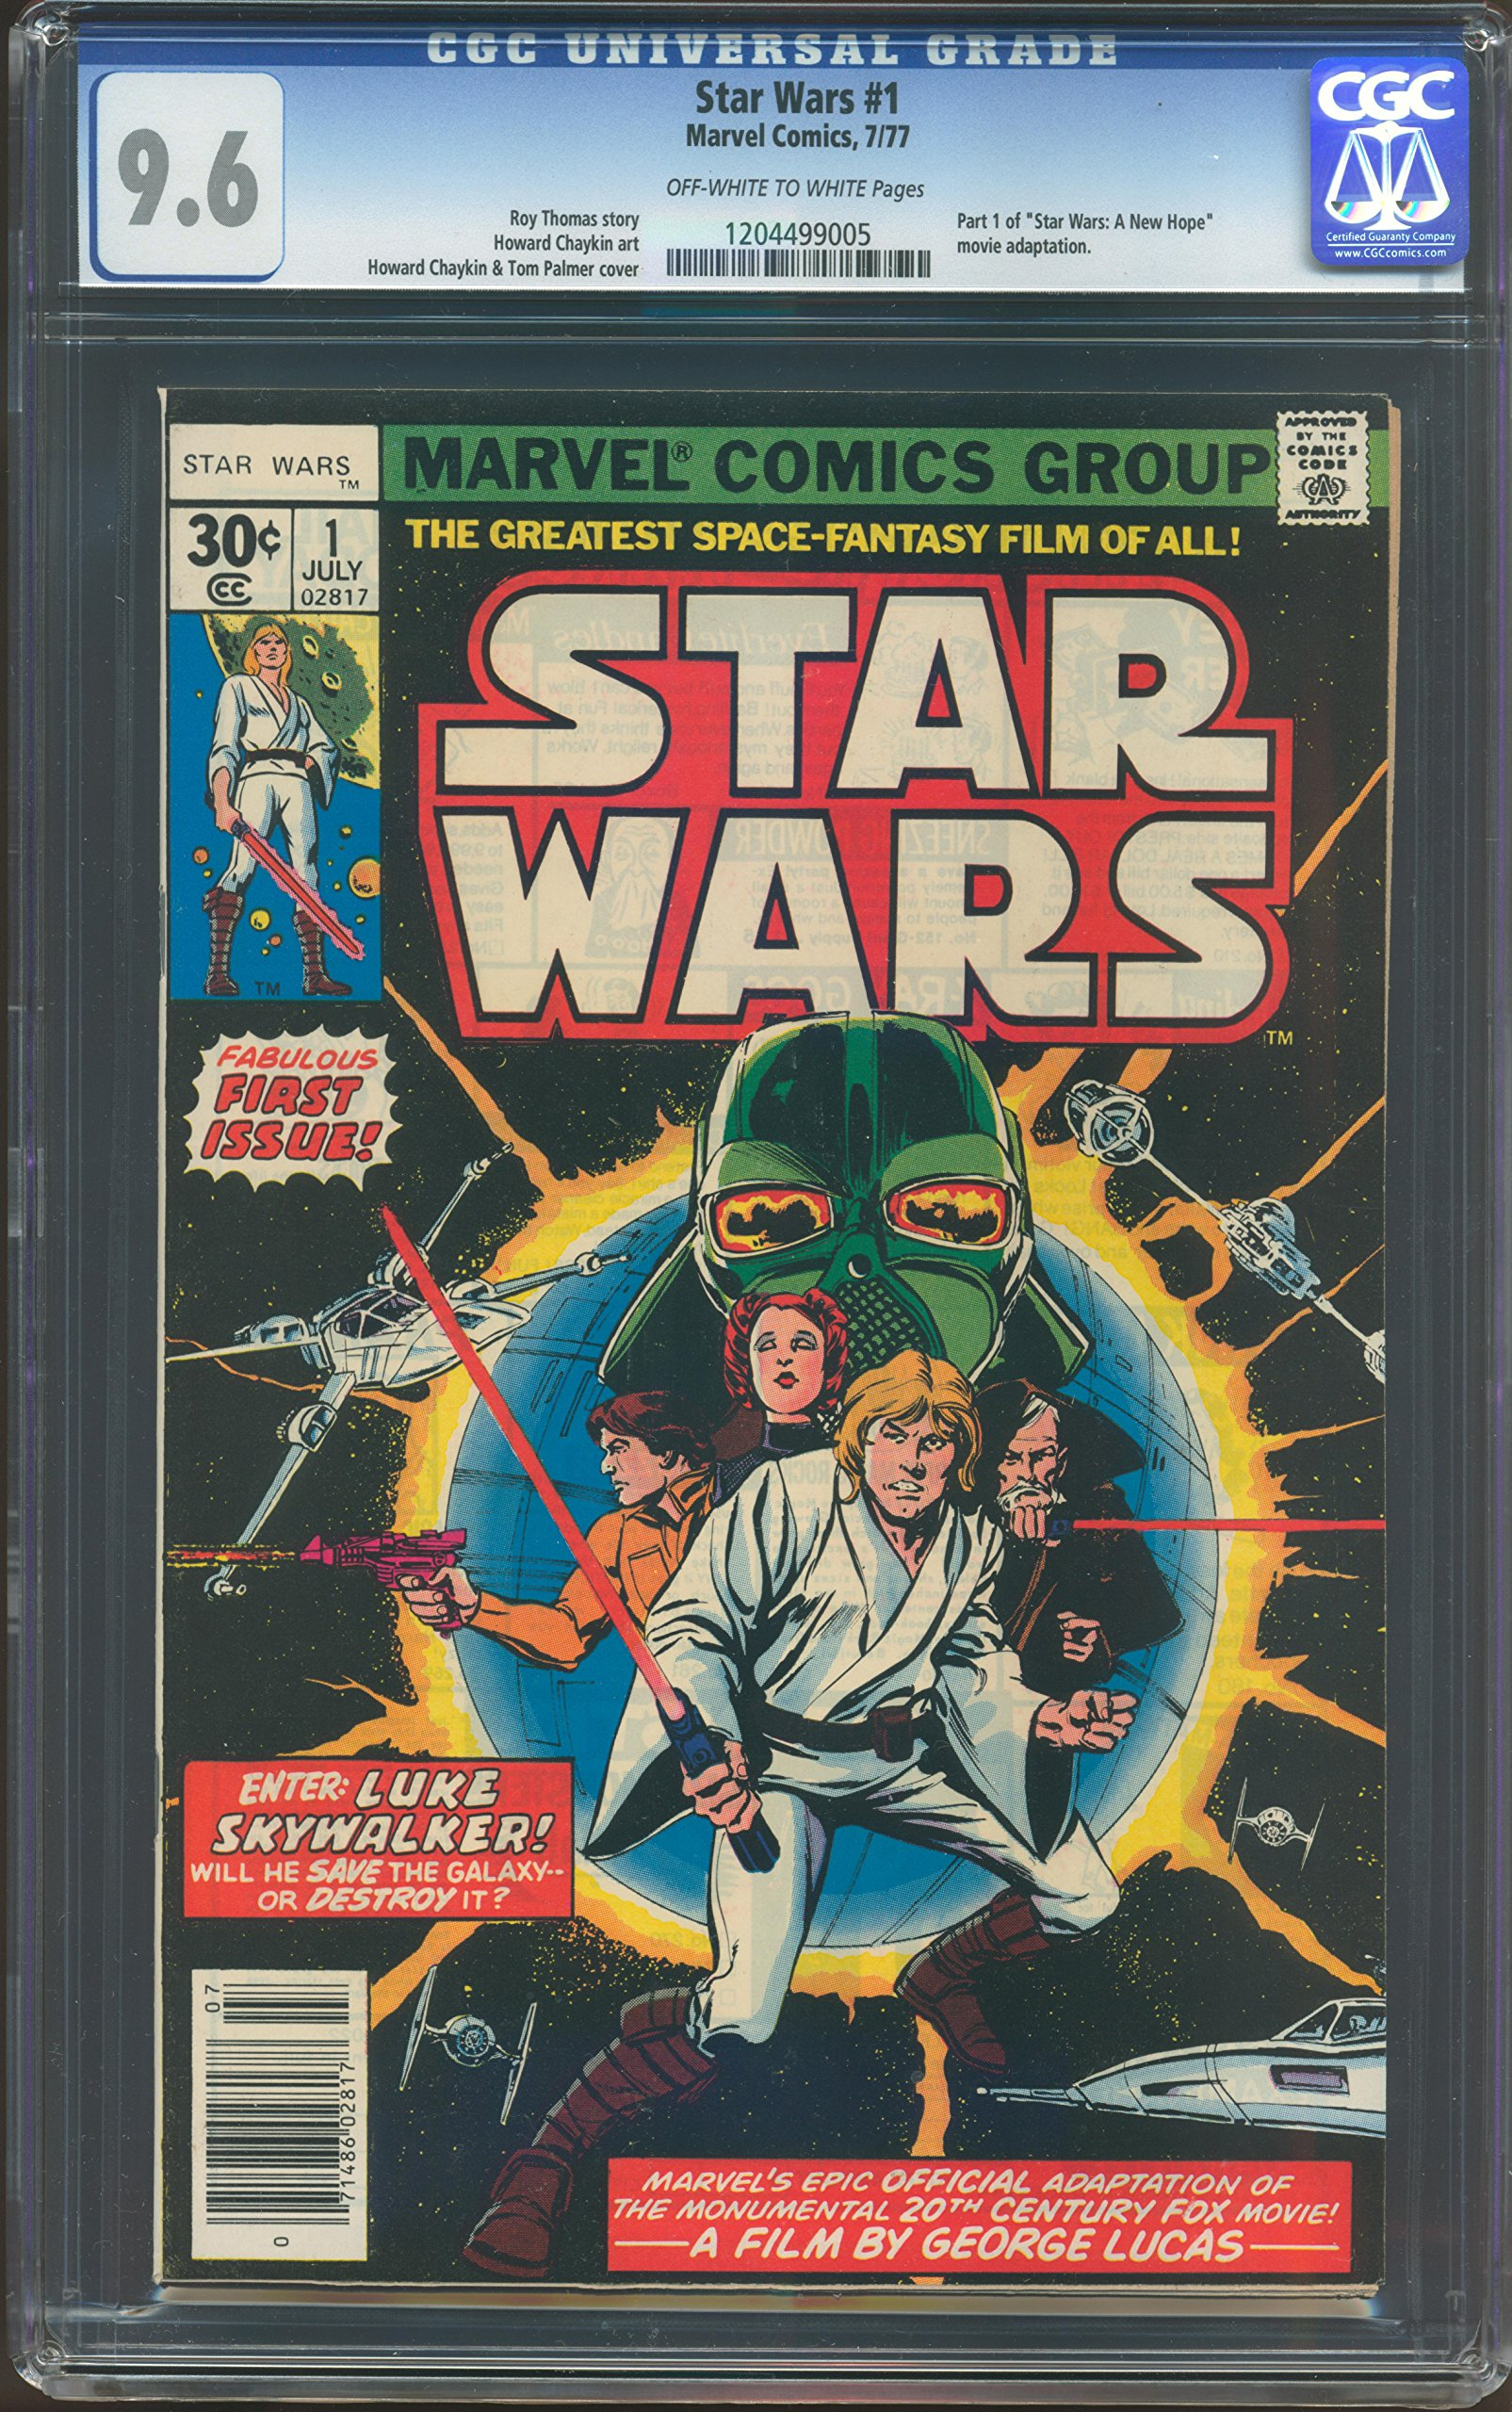 MARVEL COMICS STAR WARS VOL 1 # 1 CGC-GRADED 9.6 NEAR MINT+ WHITE PAGES JULY 1977 INVENTORY # 15003: Amazon.es: Roy Thomas: Libros